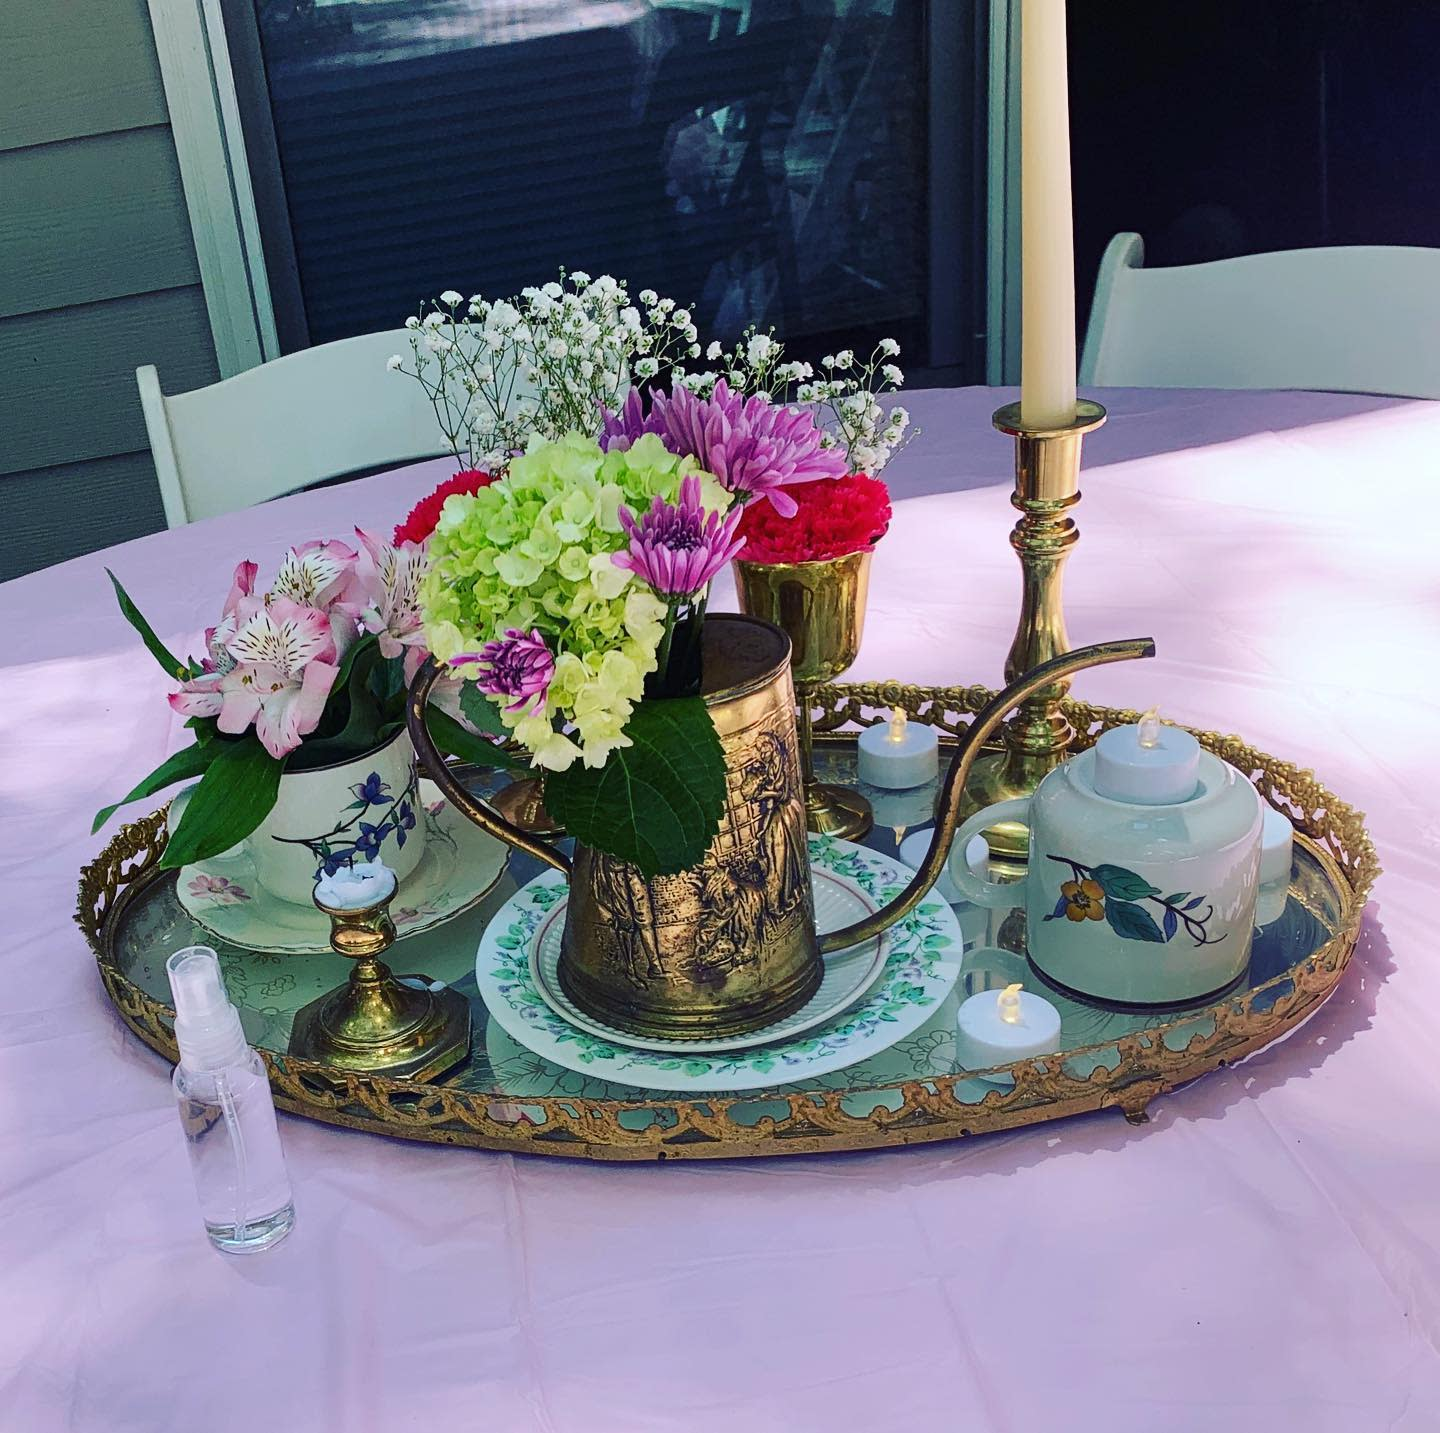 Vintage Dining Table Centerpiece Ideas -abletoparty